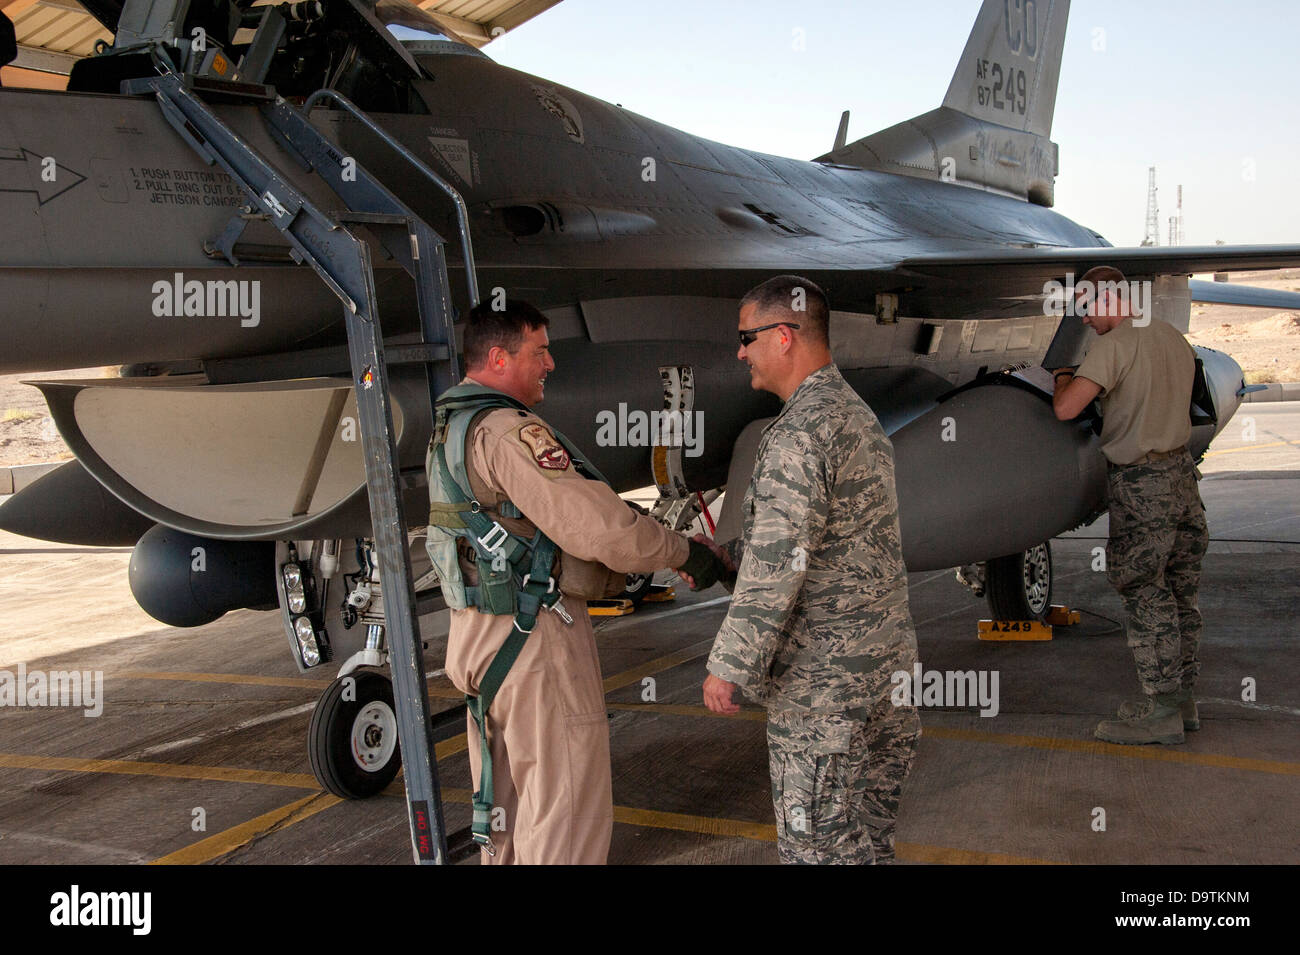 Col. Floyd Dunstan (right) greets LtCol Patrick Hanlon, both from the Colorado Air National Guard, as he arrives - Stock Image